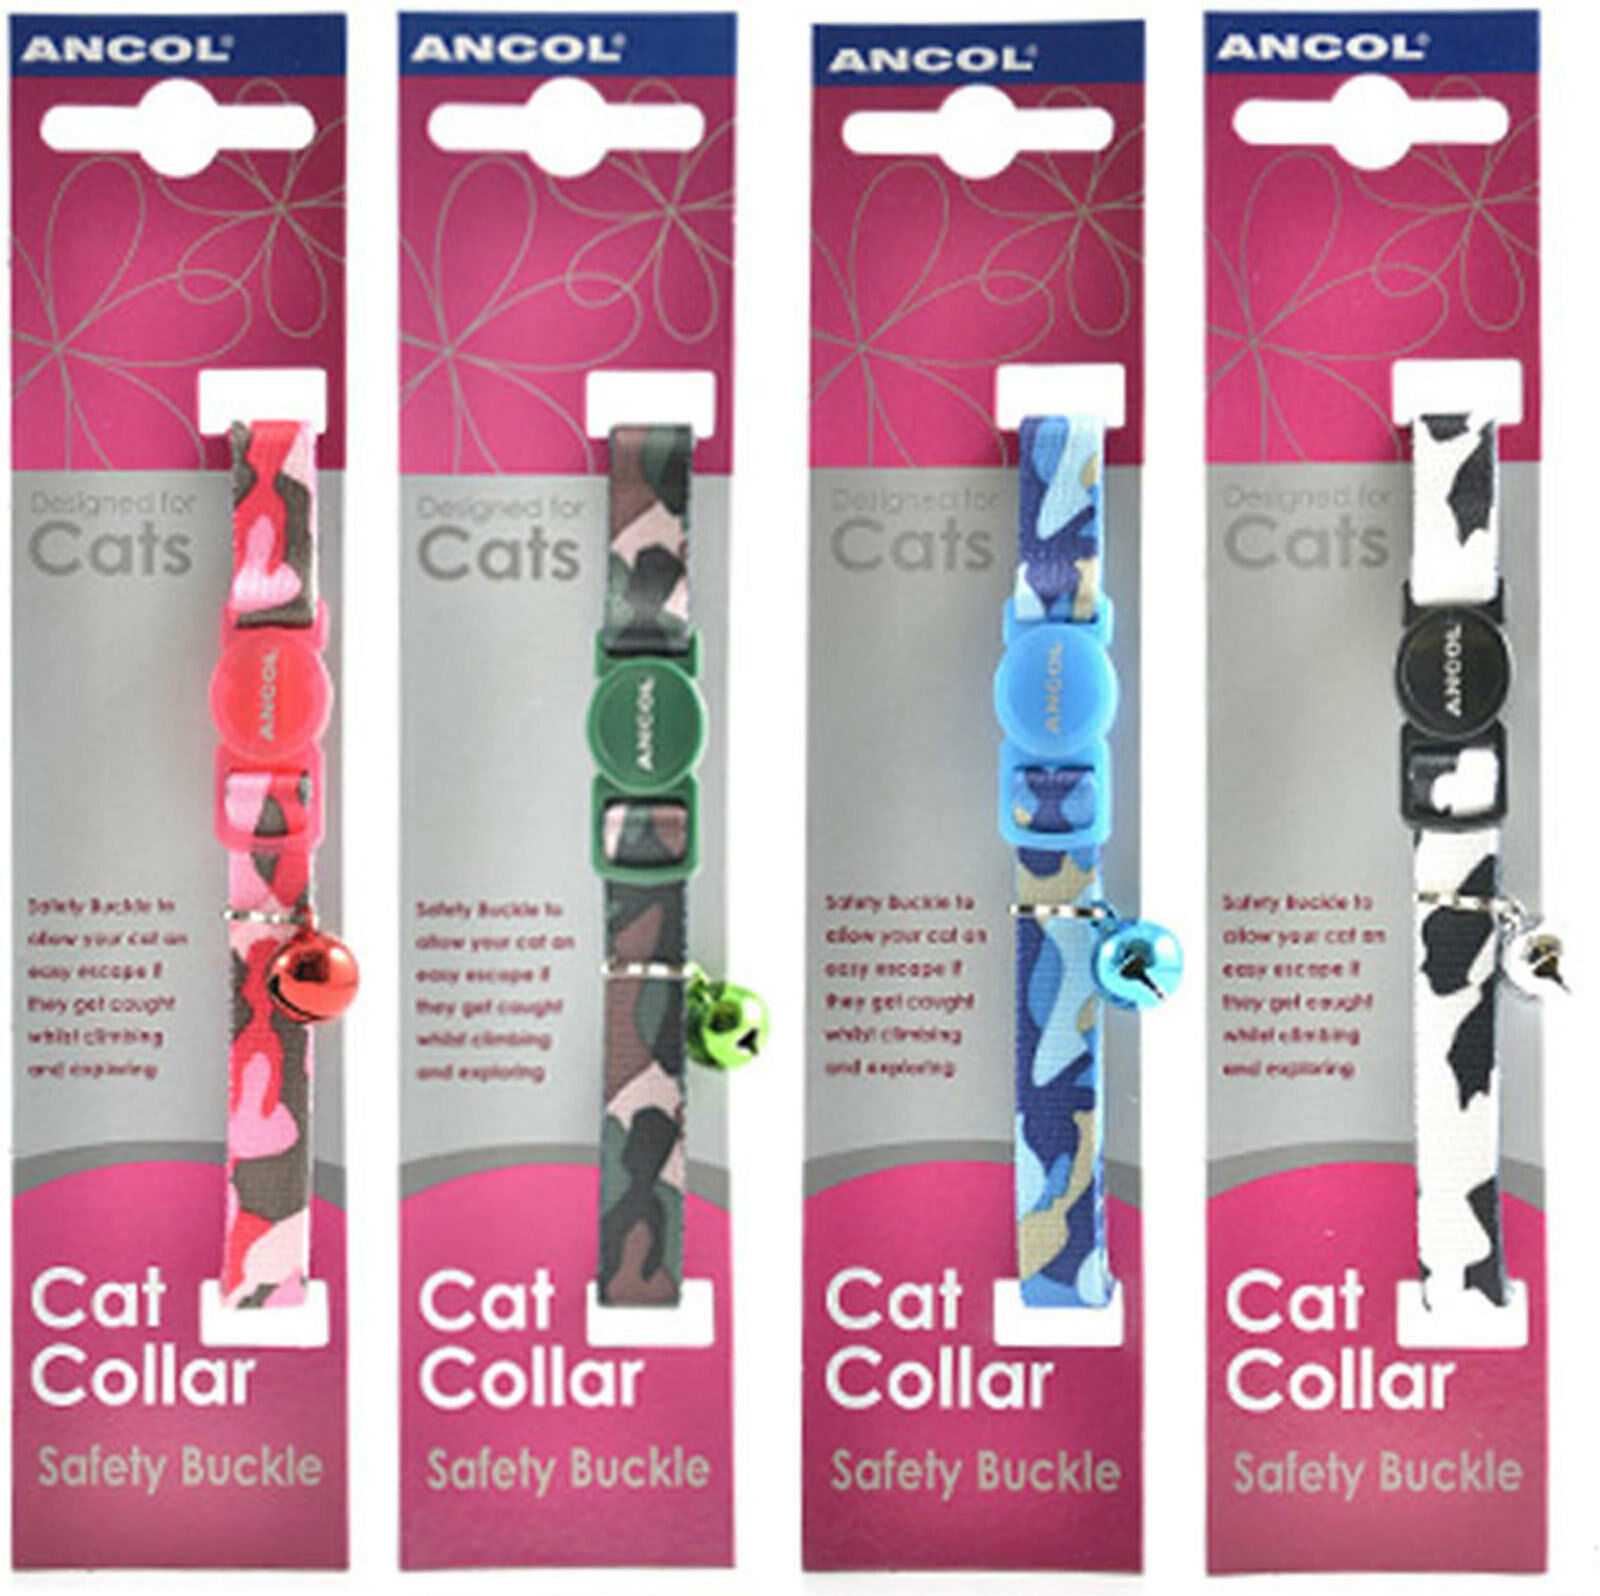 Ancol Camouflage Cat Collar 4 Pack Deal (Green, Black/White, Pink, Blue)